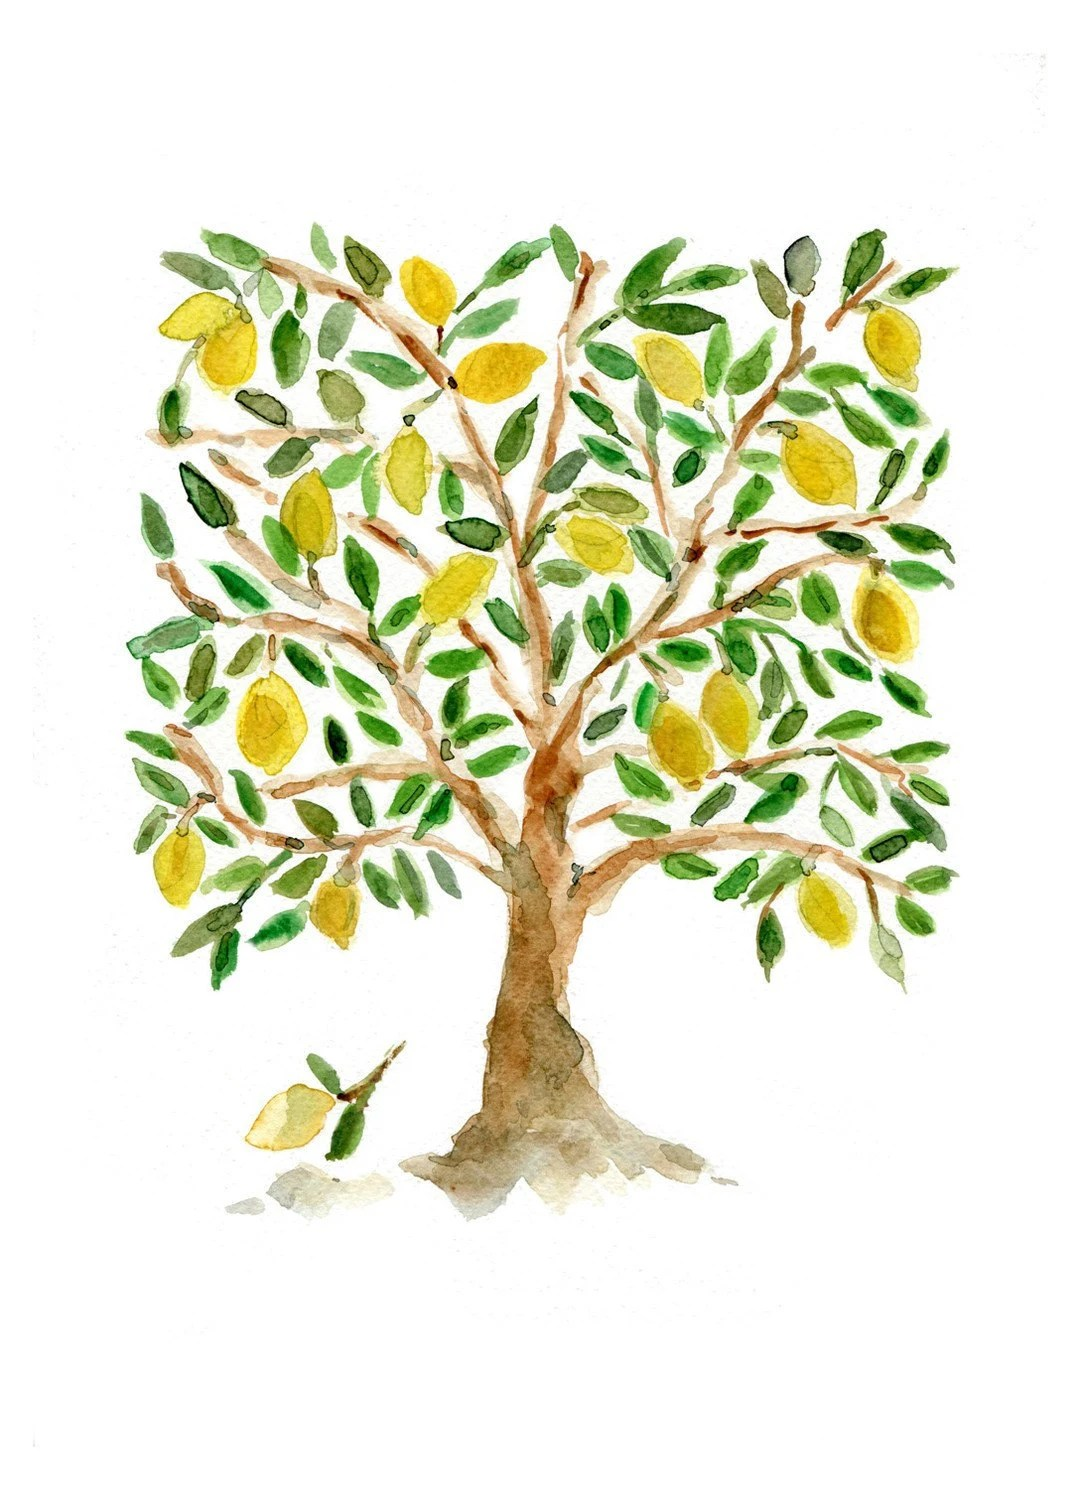 Art Print,The Lemon Tree, Folk Art inspired, print of watercolor painting, green, brown and yellow, limited edition, Mediterranean